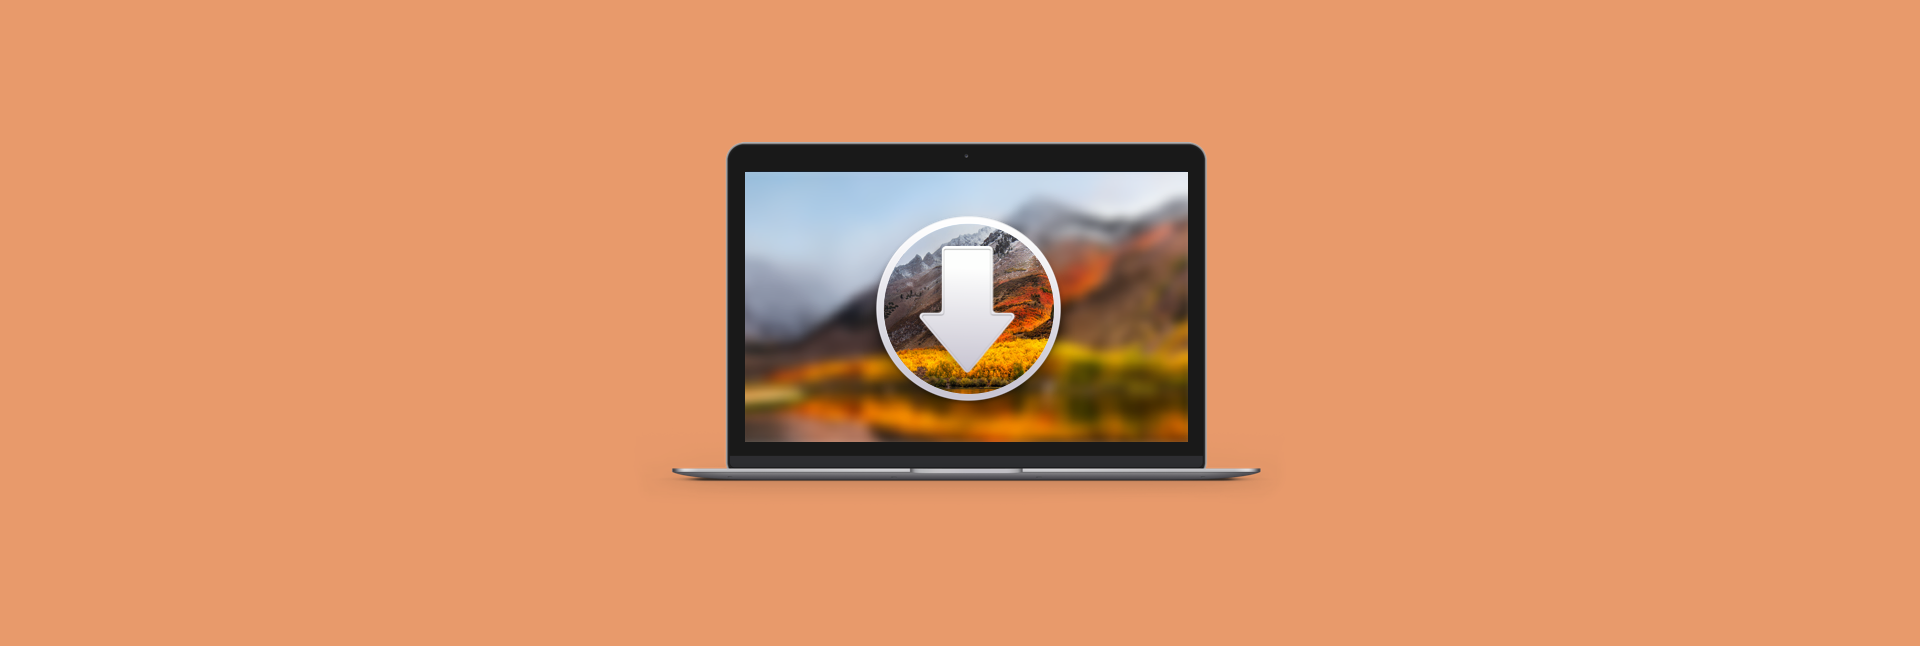 How to downgrade from macOS High Sierra